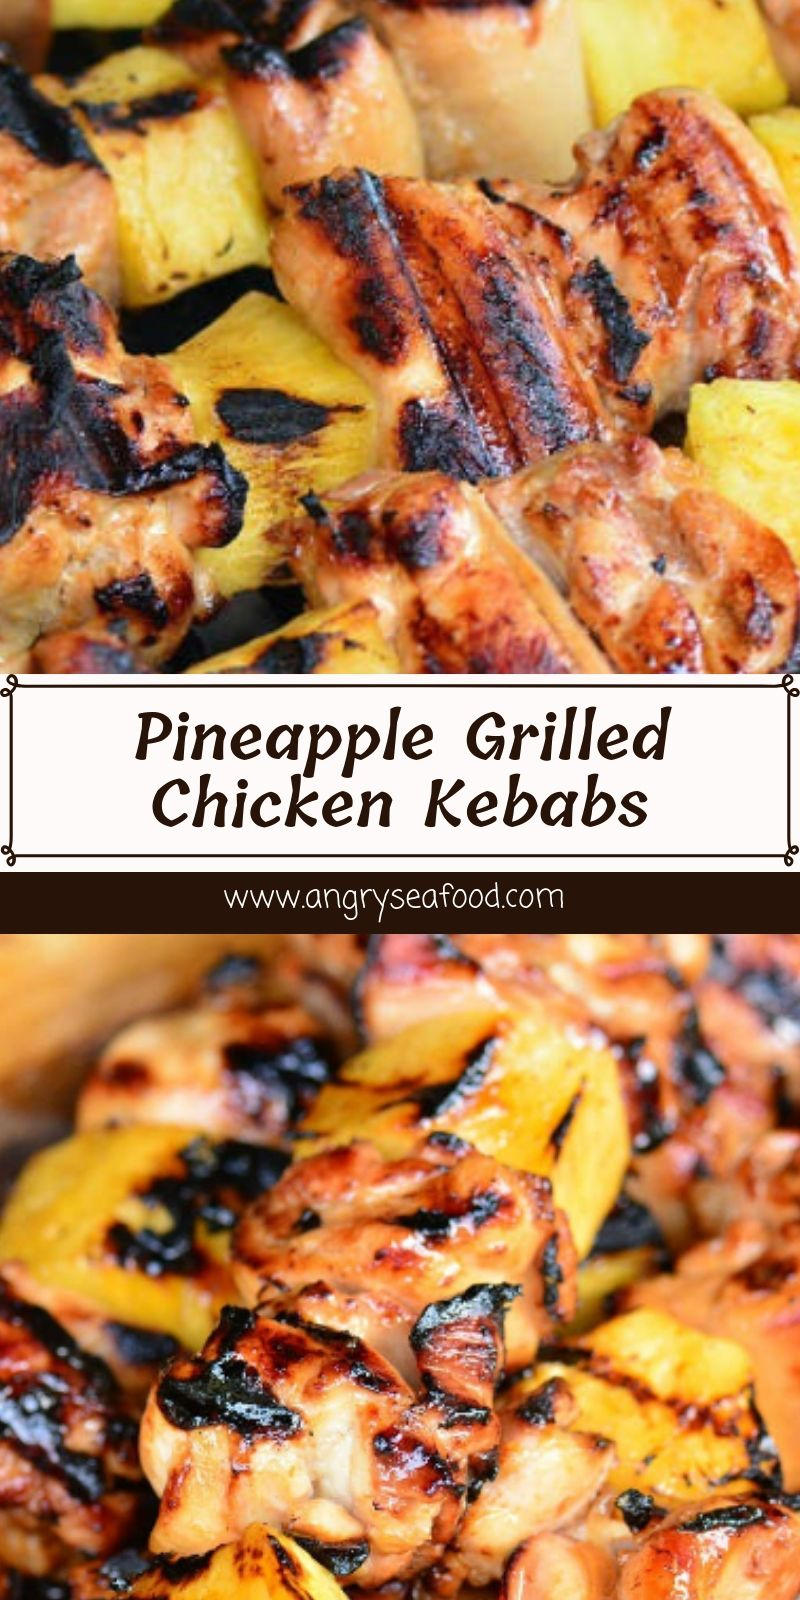 https://www.willcookforsmiles.com/pineapple-grilled-chicken-kebabs/